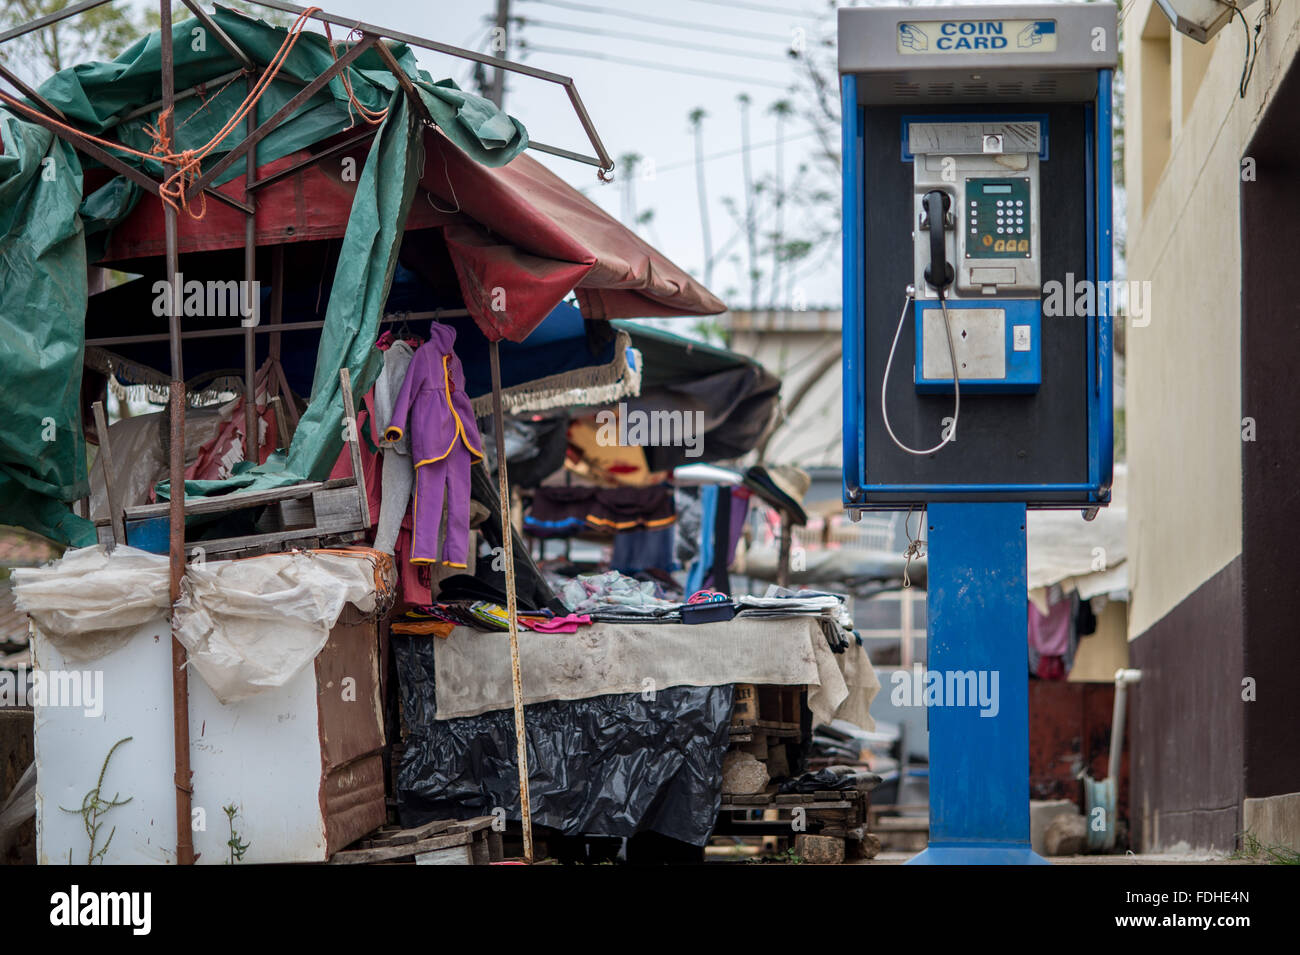 Payphone at the Manzini Wholesale Produce and Craft Market in Swaziland, Africa - Stock Image